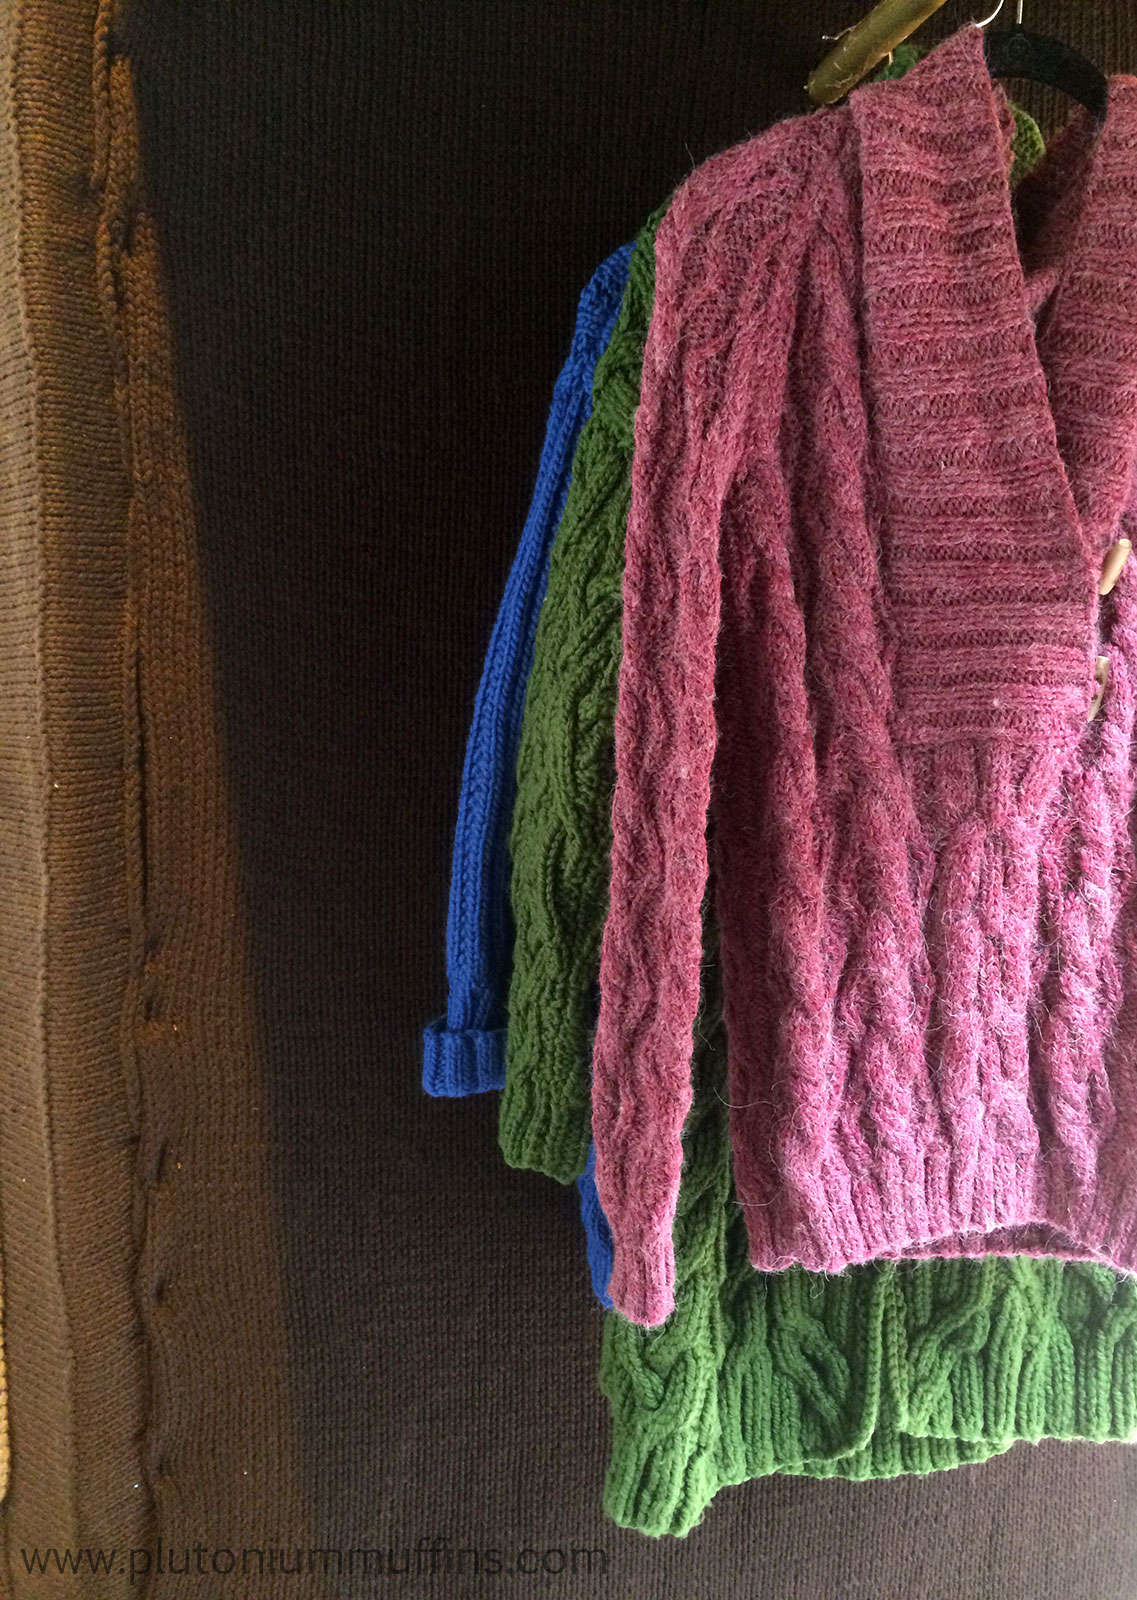 Beautiful jumpers as you go through the wardrobe.